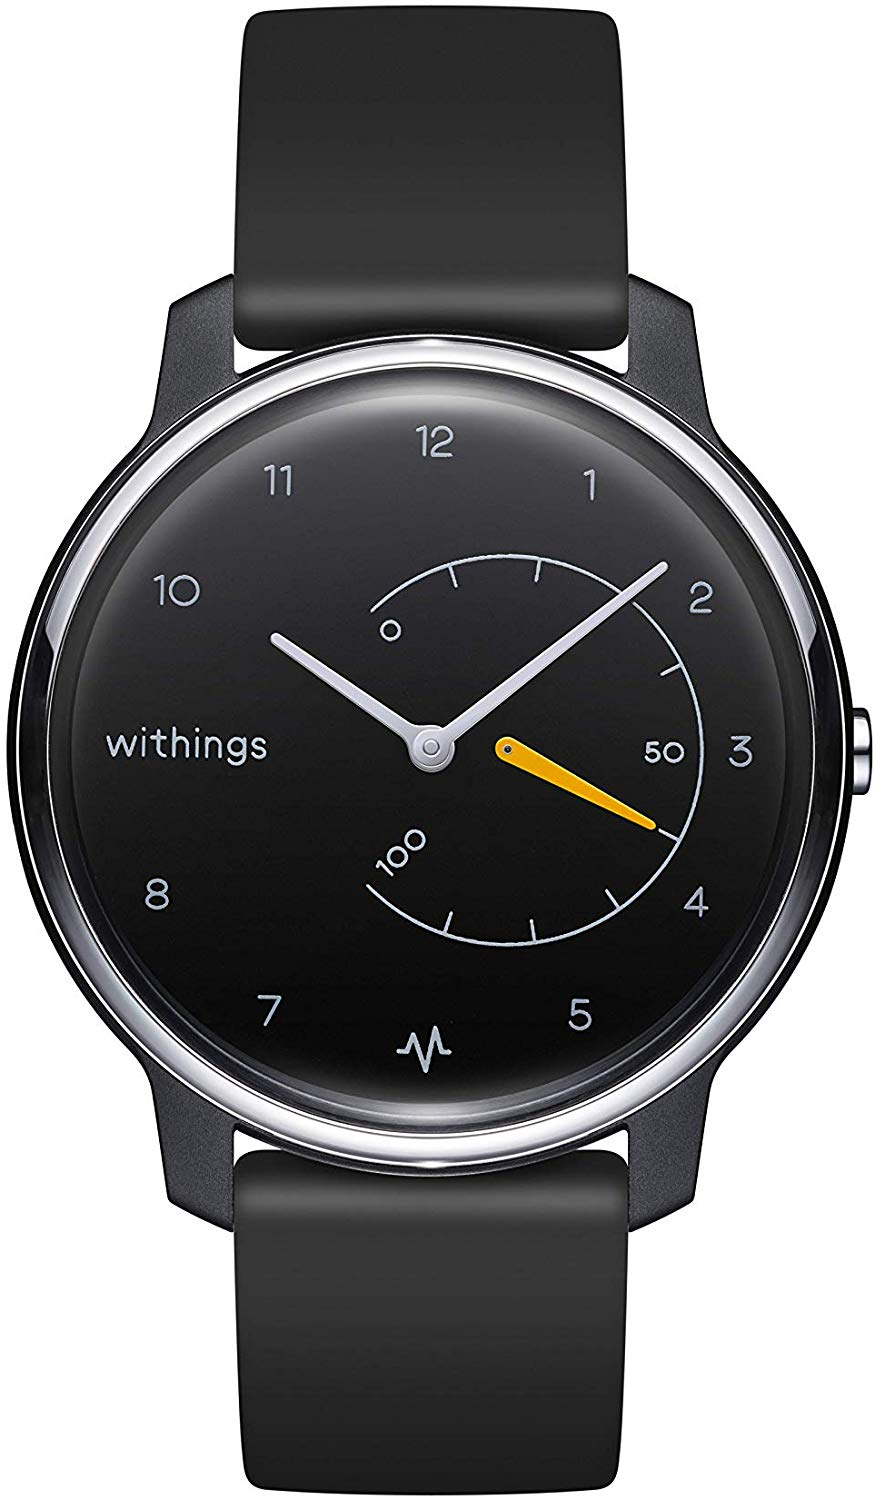 Withings Move ECG - Activity & Sleep Watch with ECG Monitor - Brand New